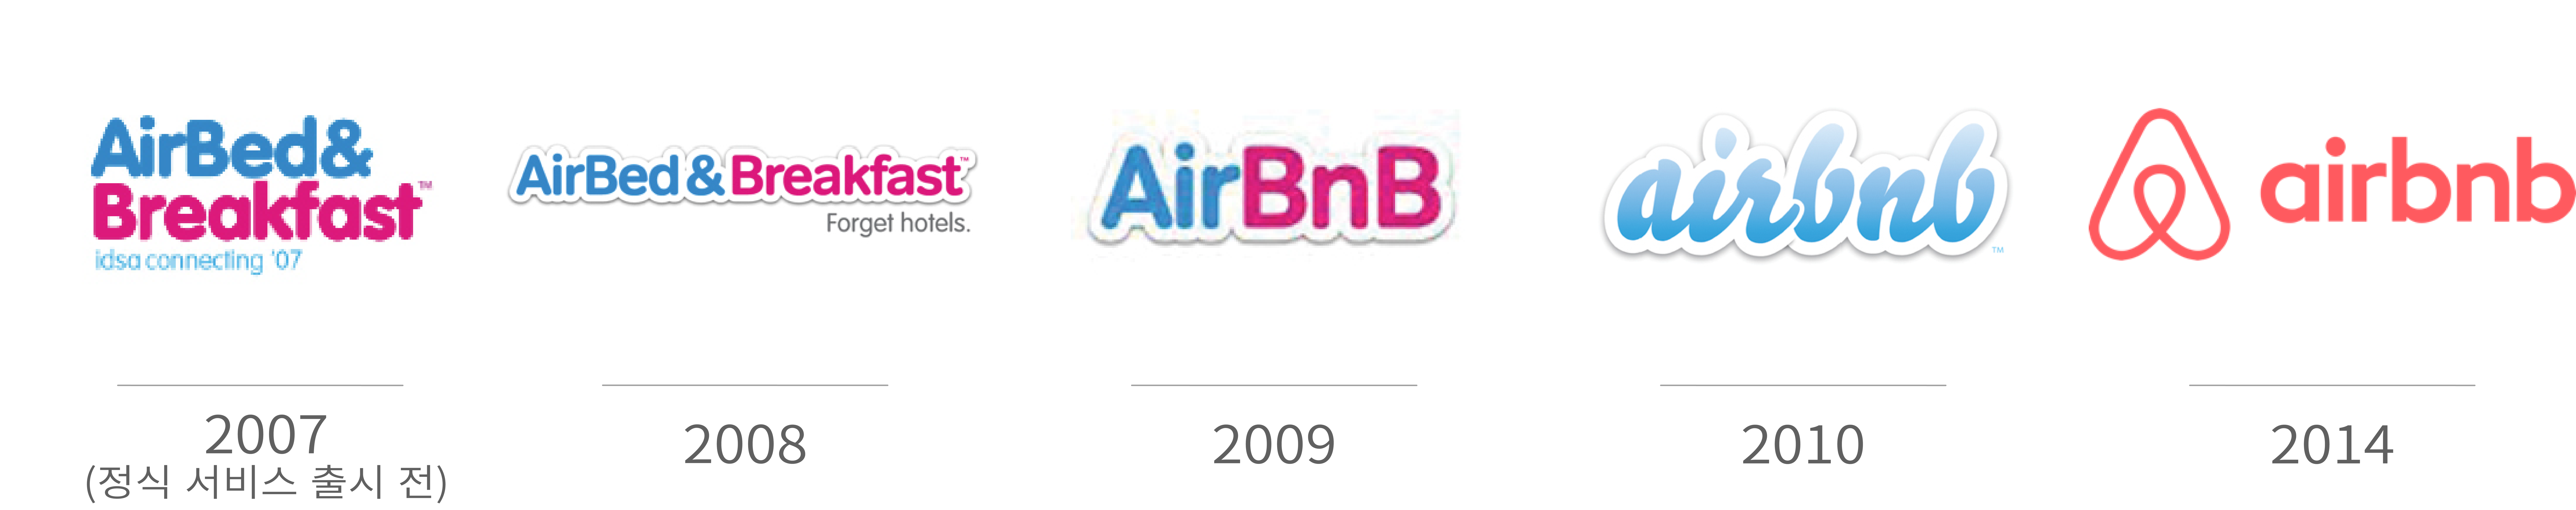 02. airbnb